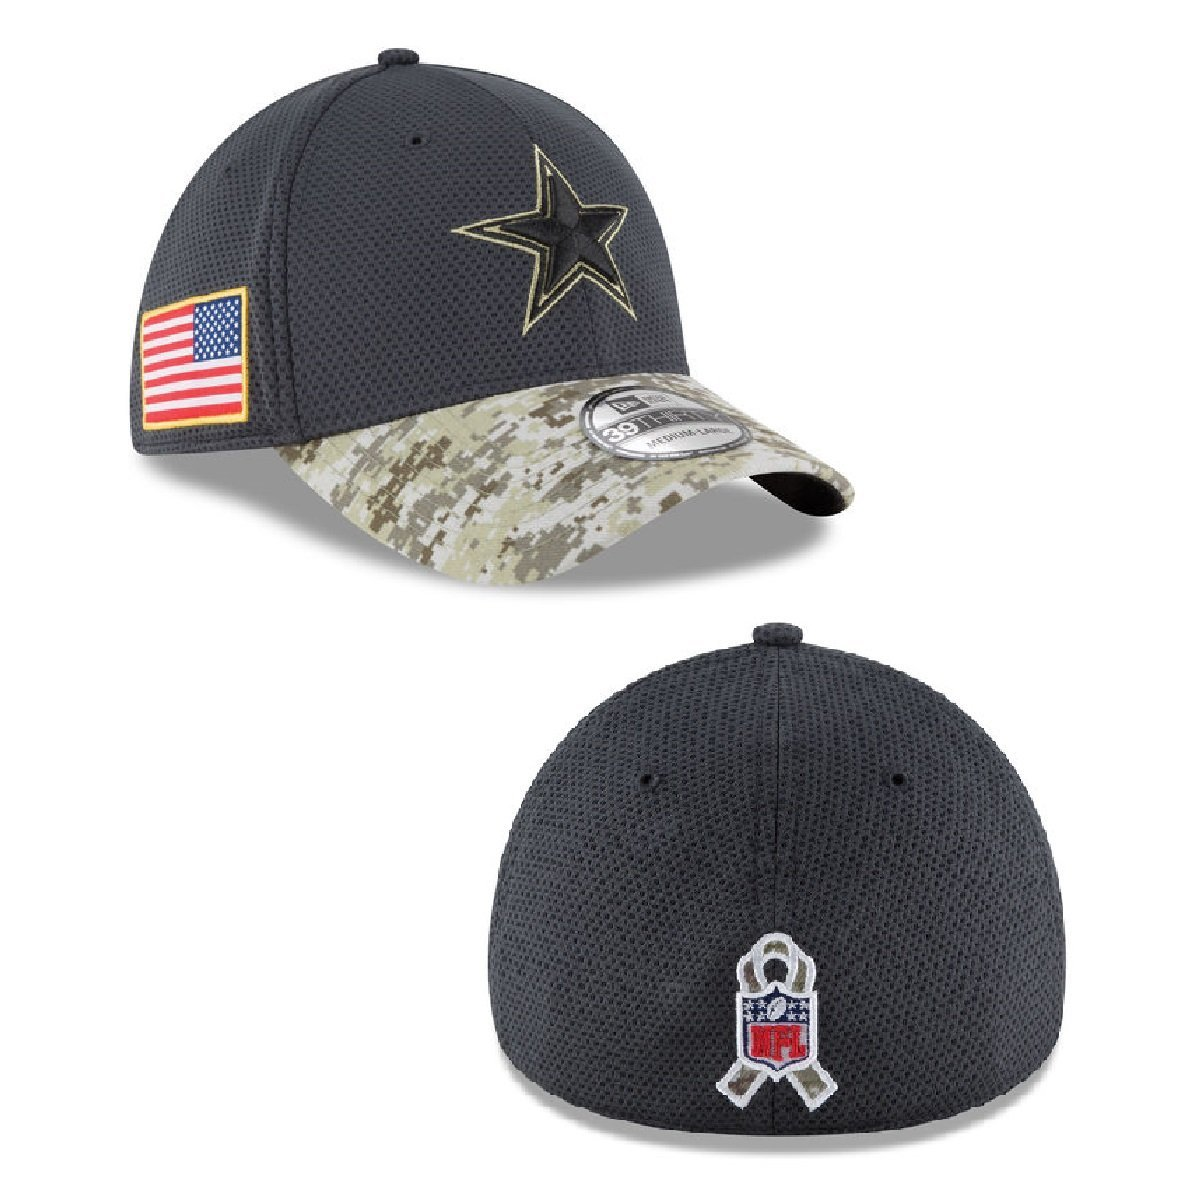 574c3a660c2 Get Quotations · New Era 39Thrity Hat NFL 2016 Dallas Cowboys Salute To  Service Official Gray Flex Cap